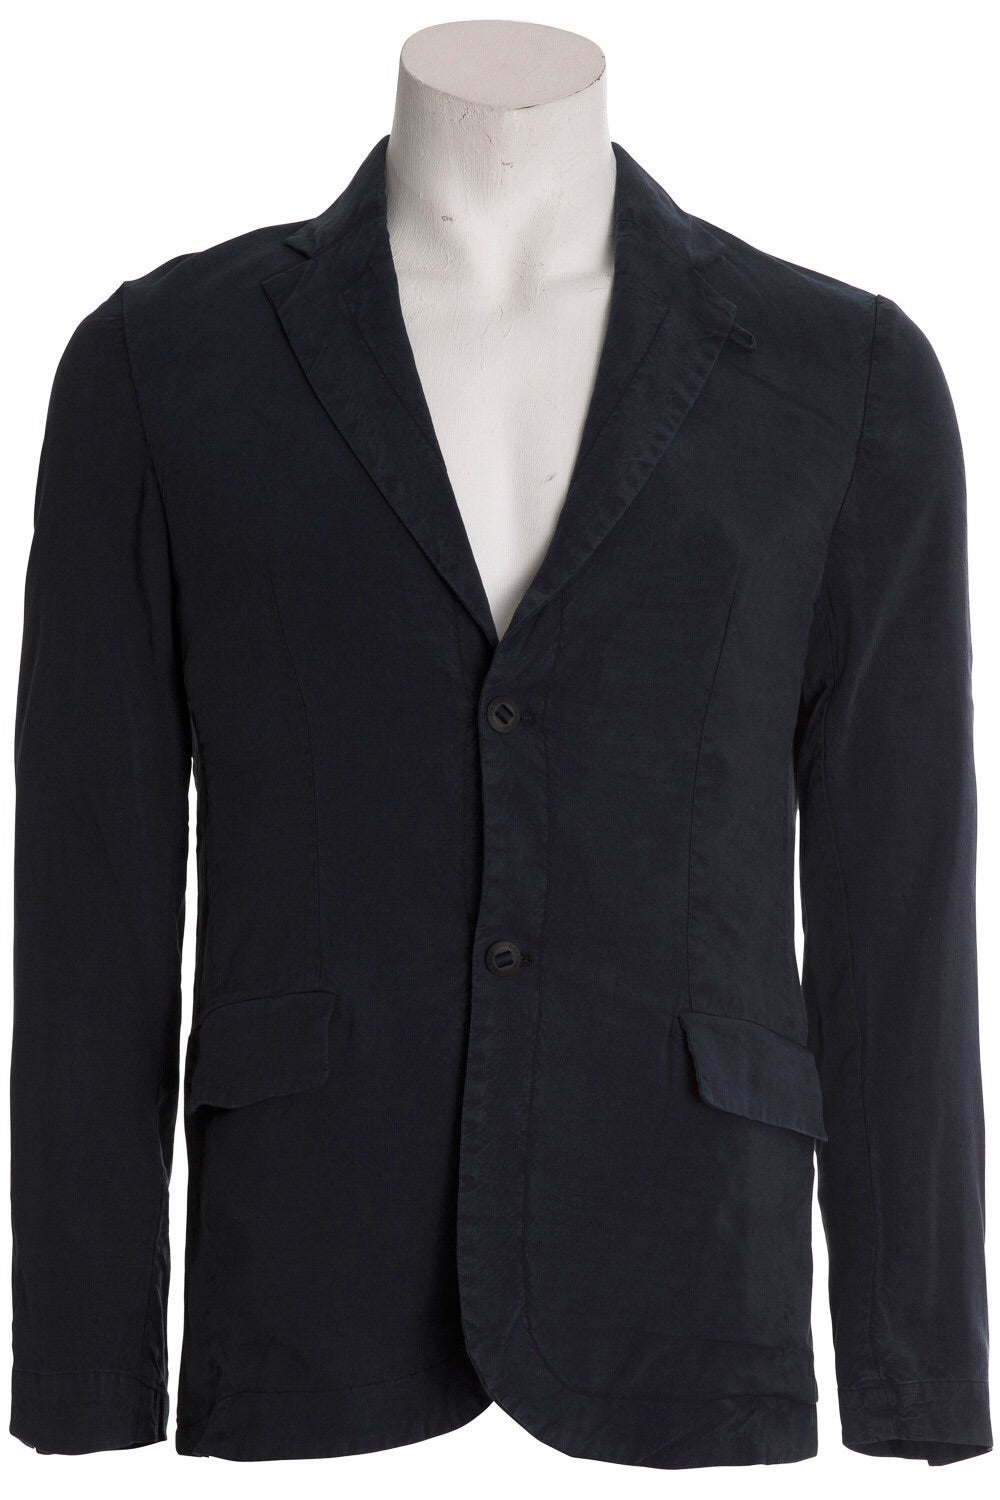 Hannes Roether Navy Linen Jacket